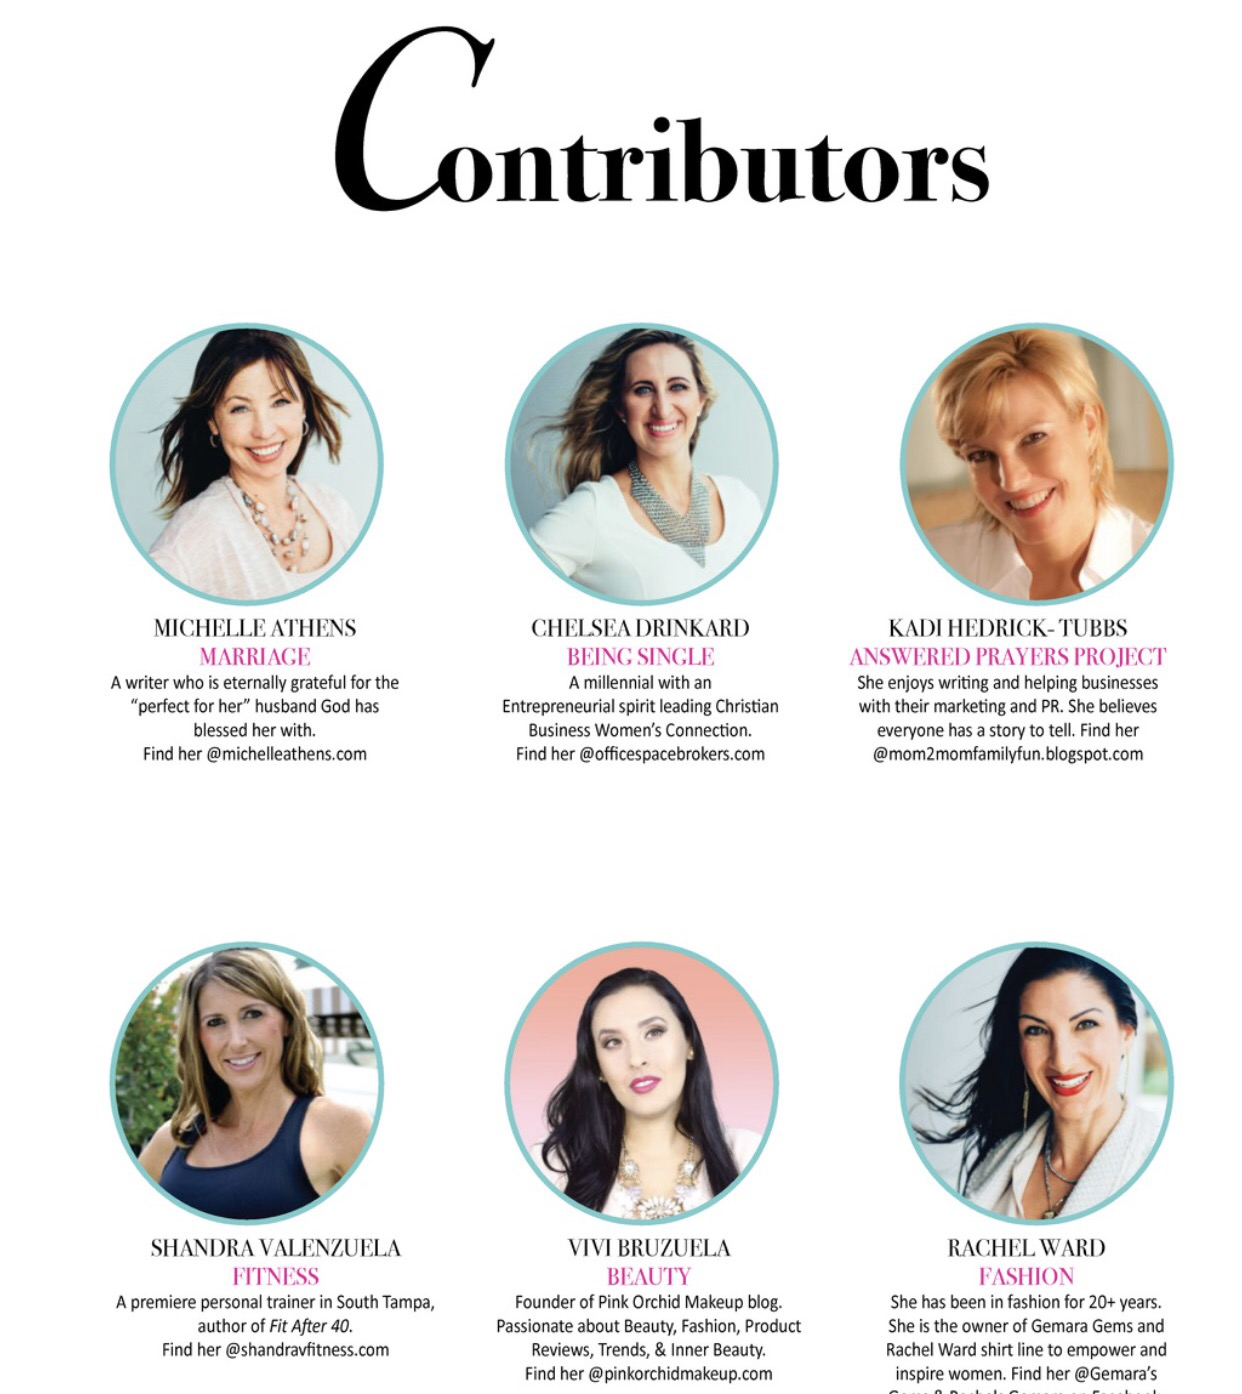 Contributor-To-SCW-Magazine-Strong-and-Courageous-Women-Vivi-Brizuela-PinkOrchidMakeup